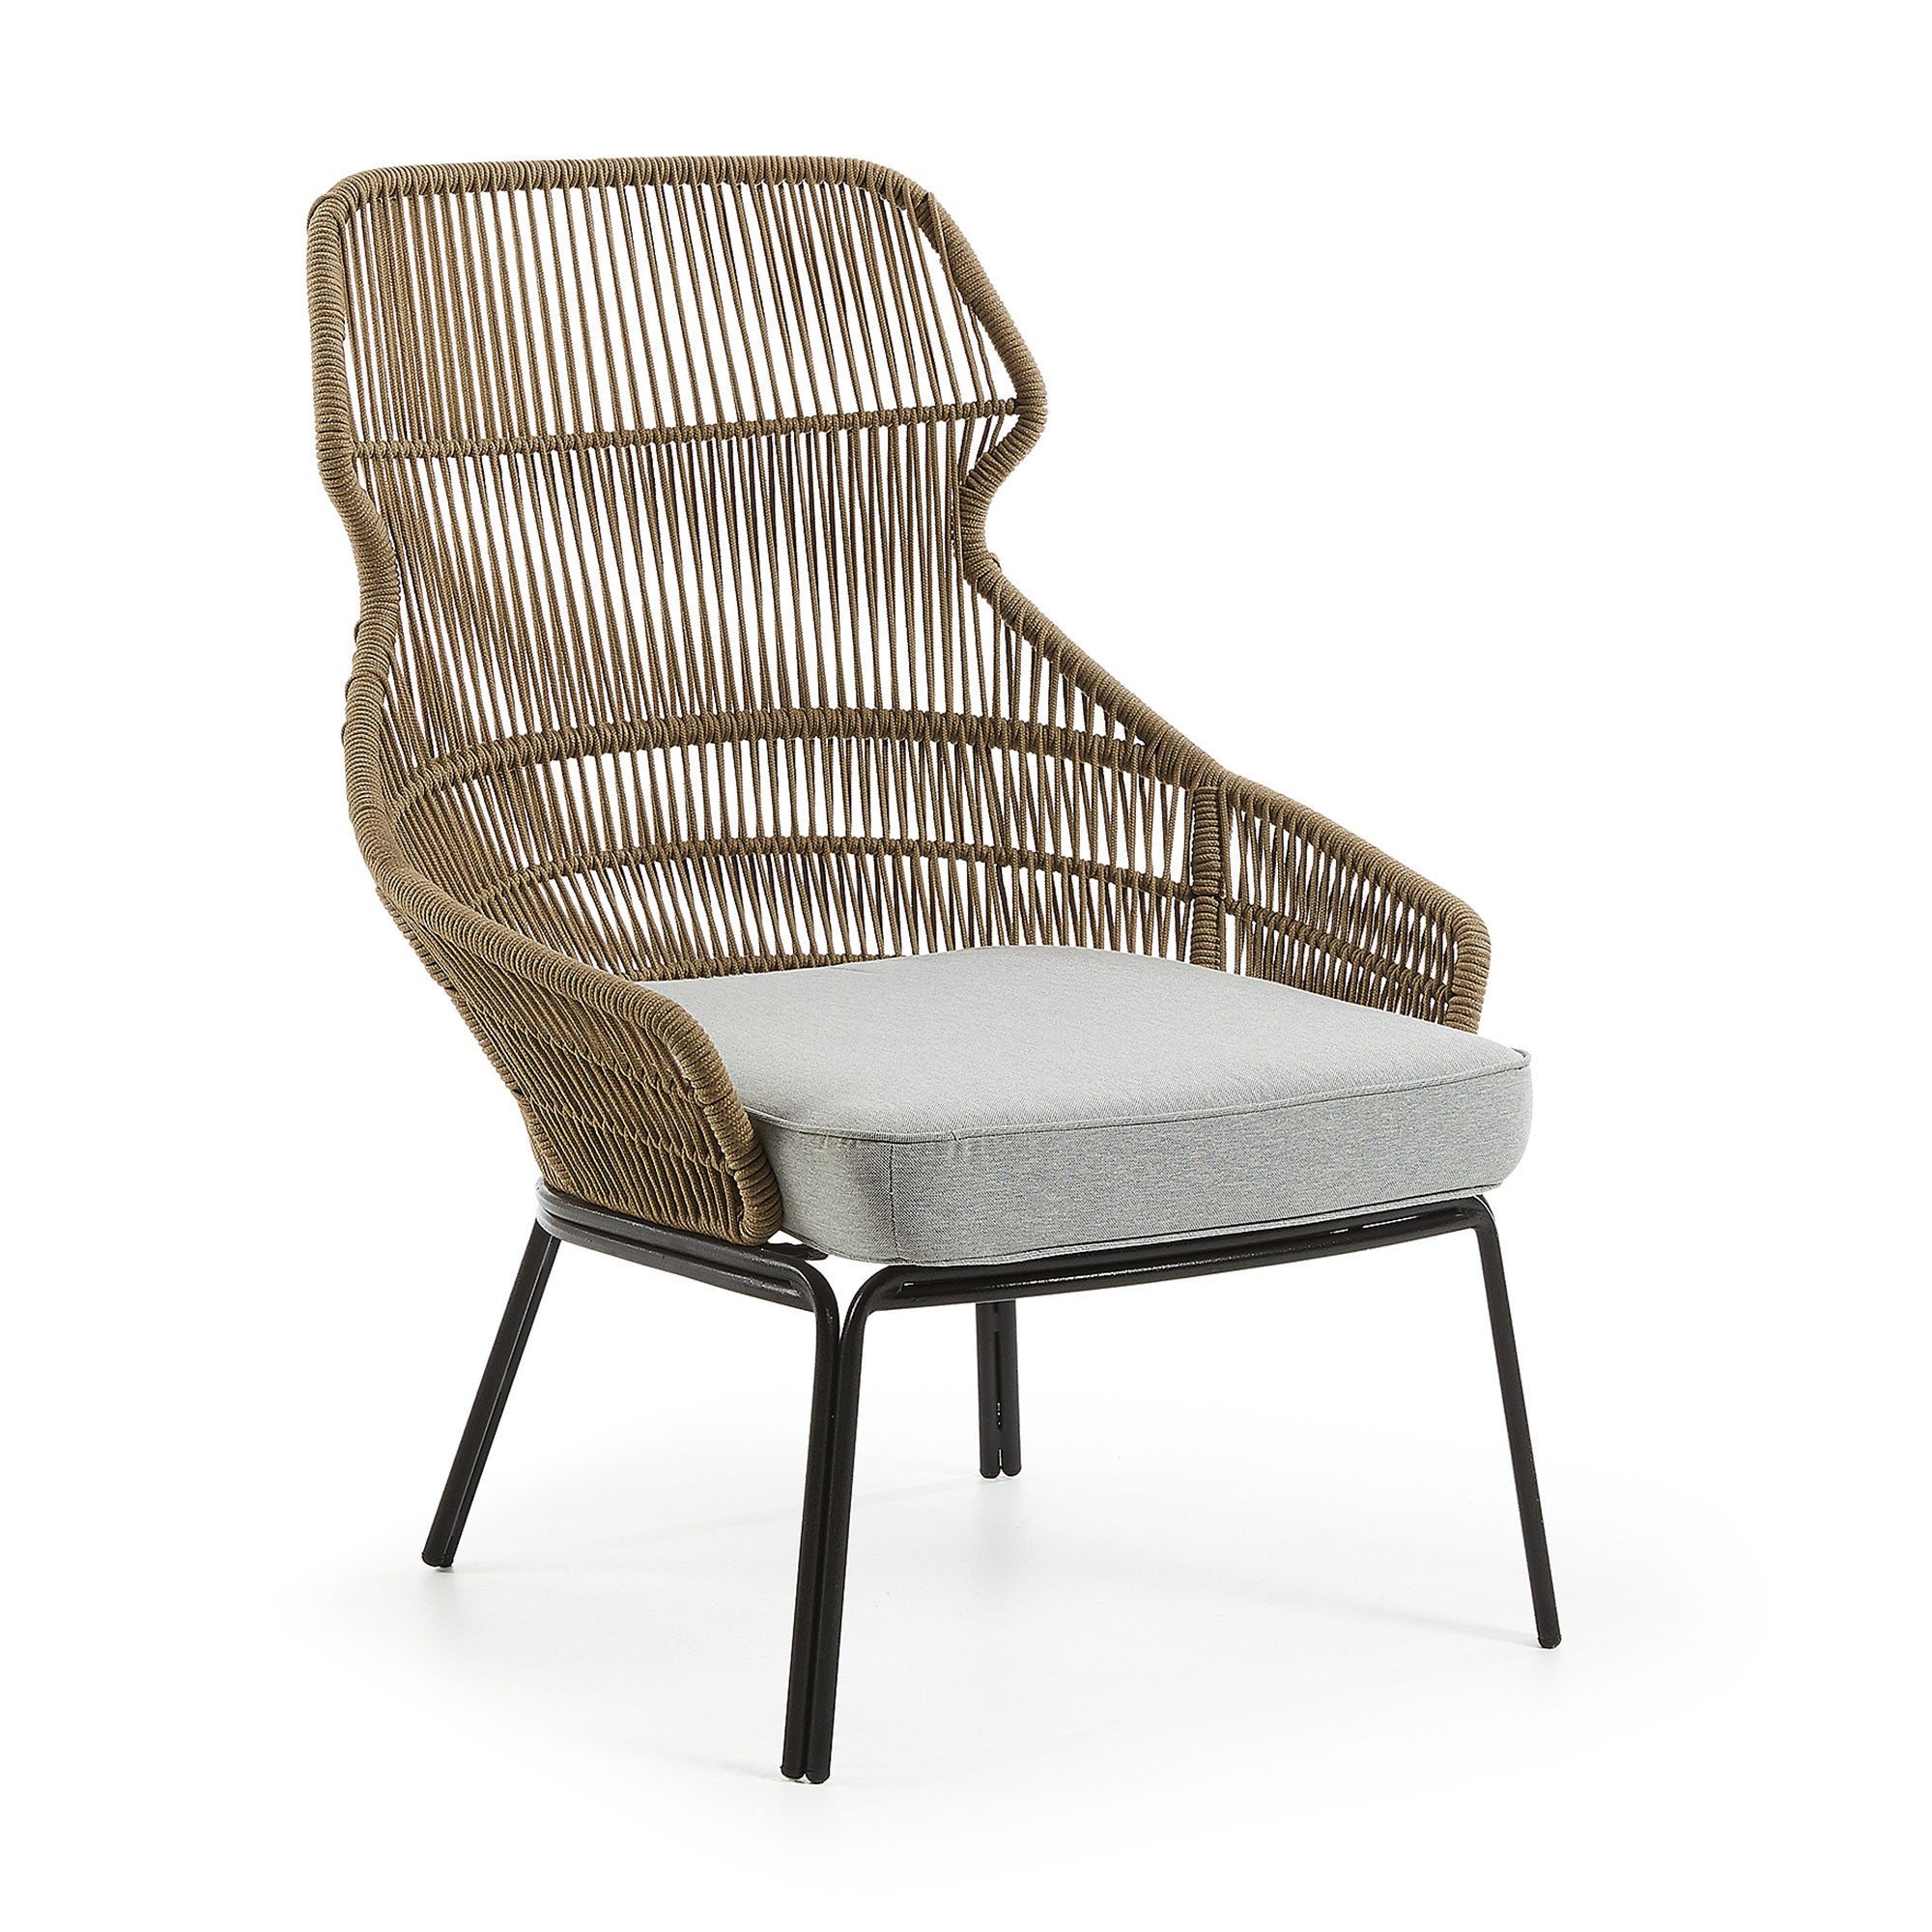 Jet Patio Armchair | Tan